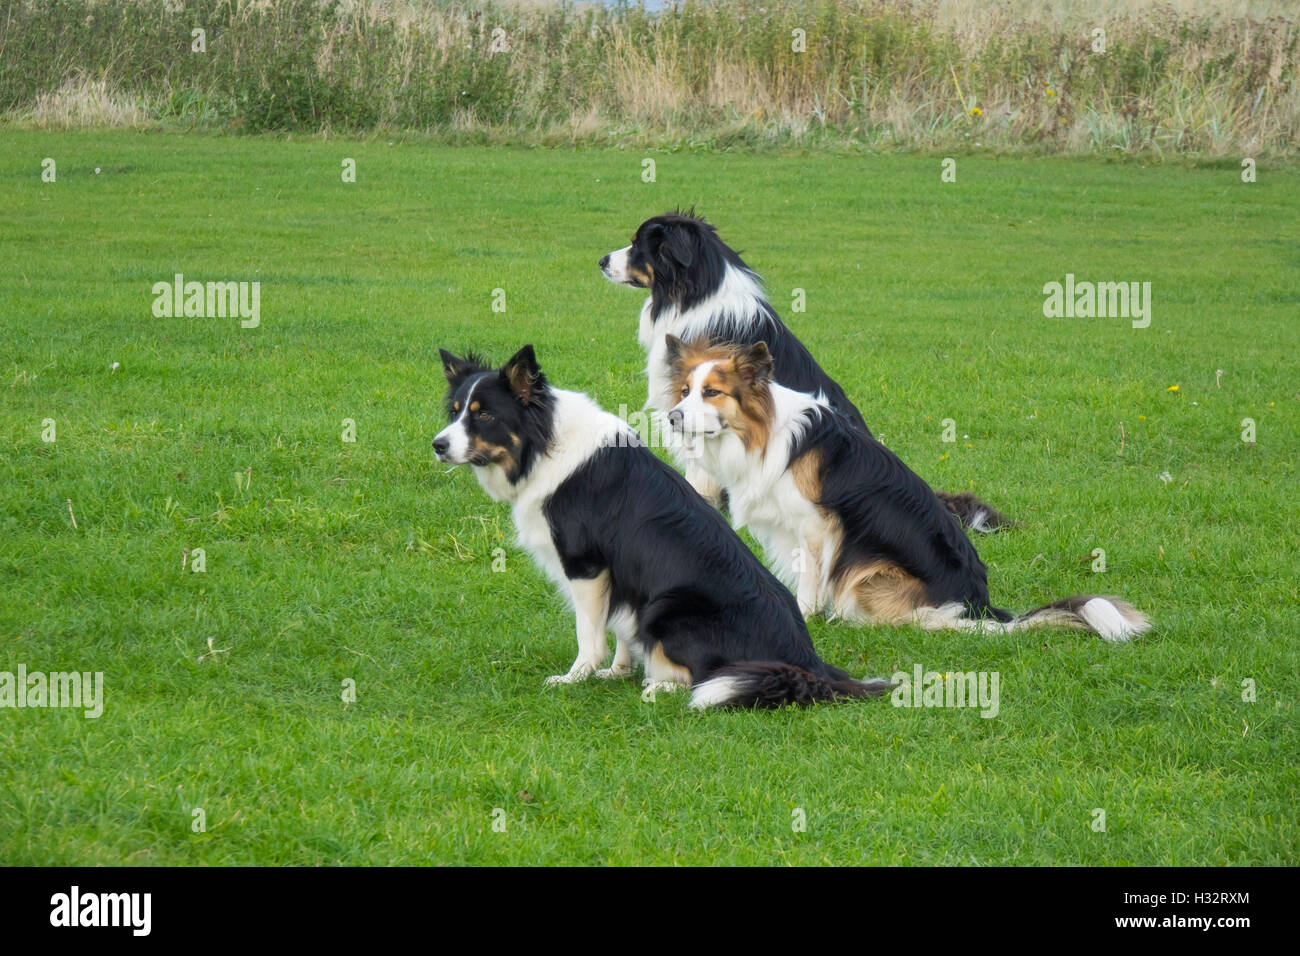 Three Collie dogs in Obedience training sitting and awaiting commands from their trainer - Stock Image